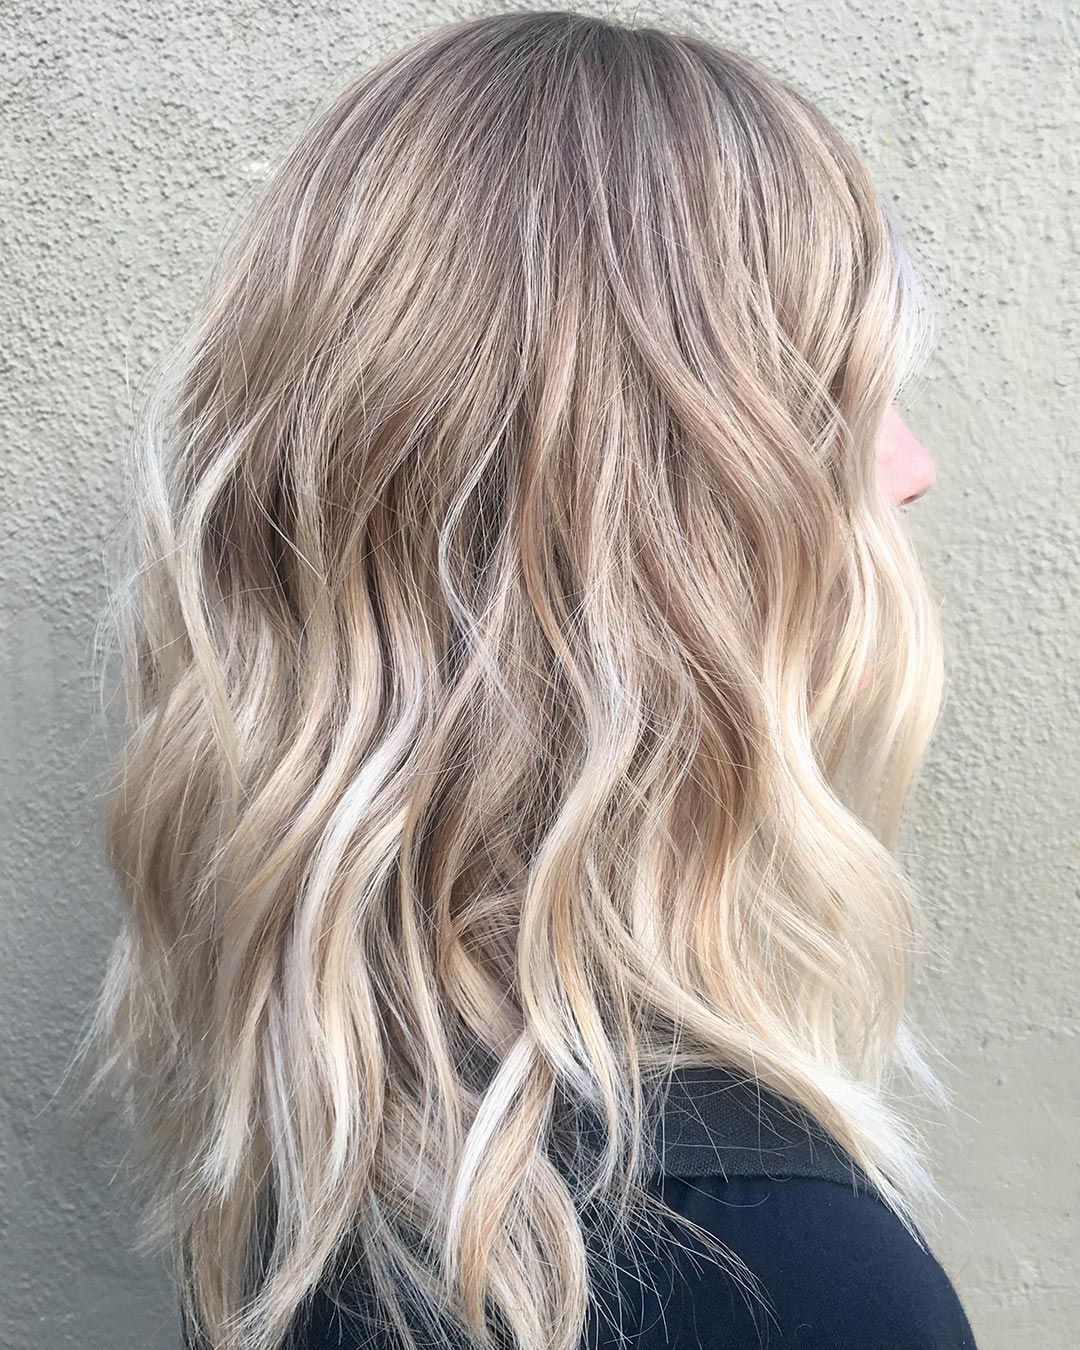 A stunning pre weddig balayage on this beautiful guest. Hair cut and color by Mariah Hottell.